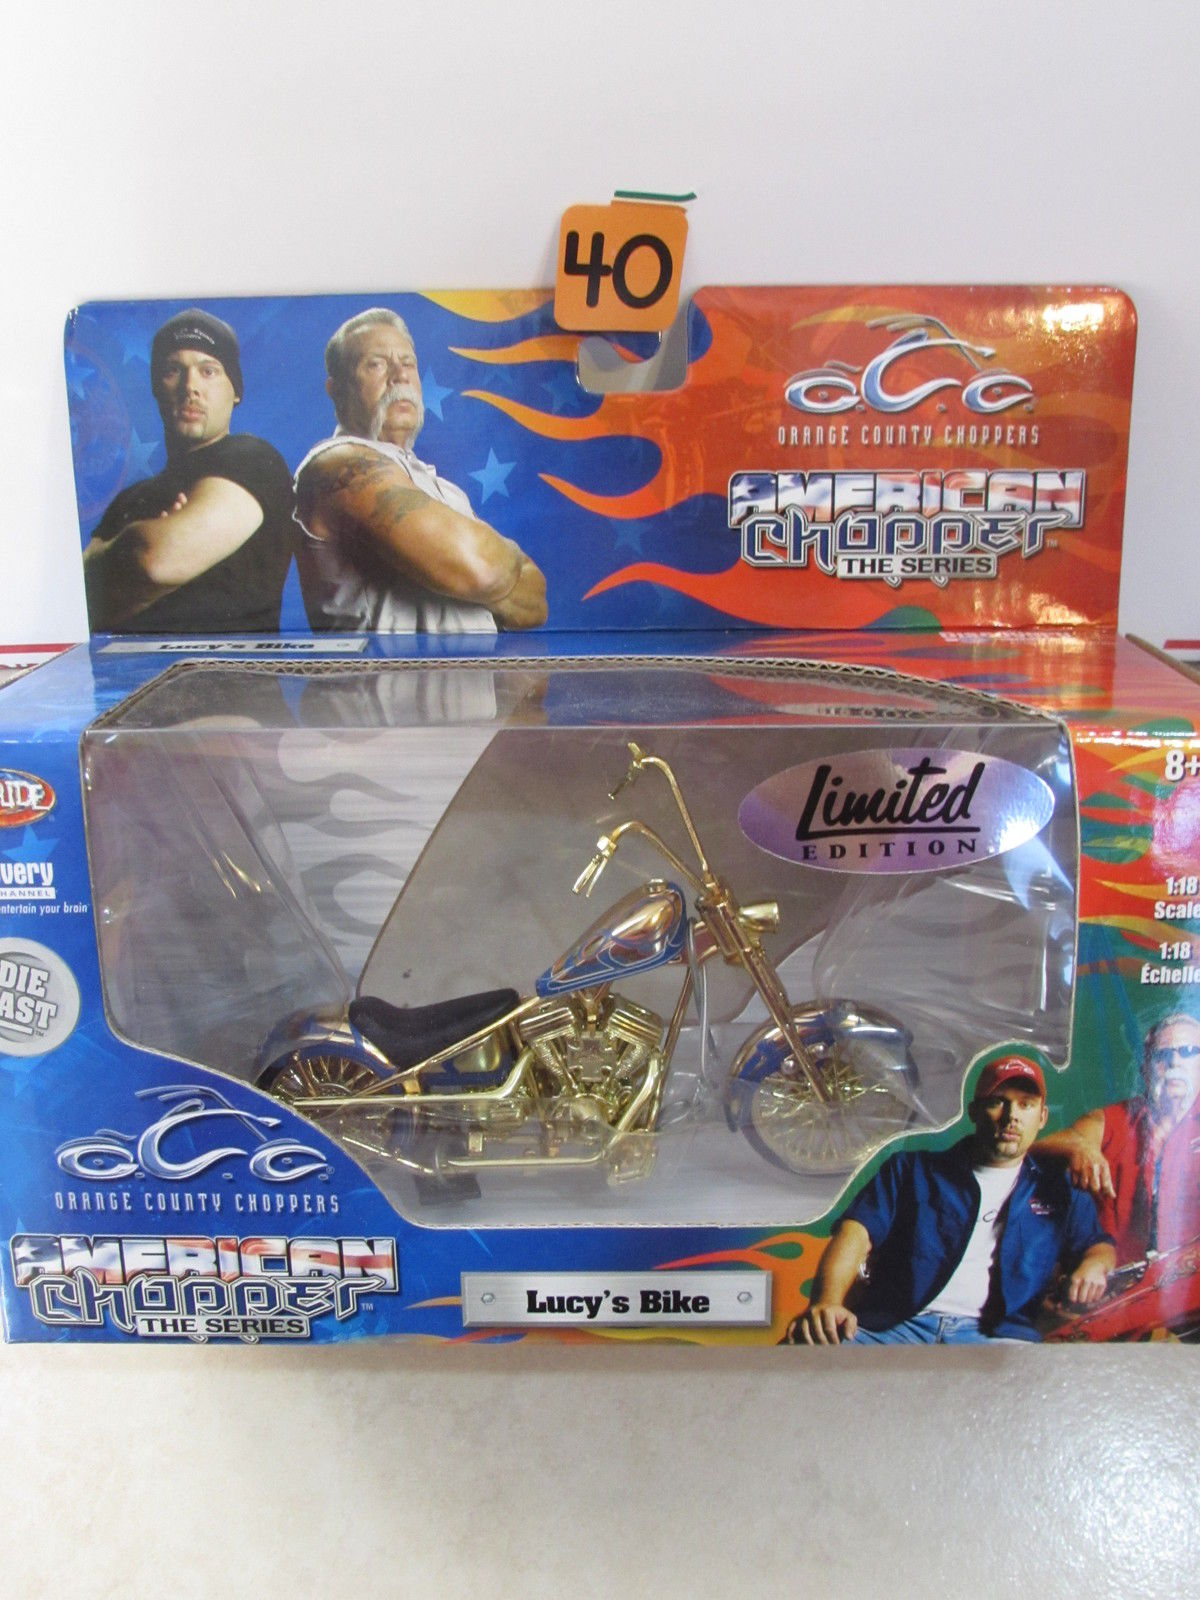 AMERICAN CHOPPER THE SERIES - LUCY'S BIKE SCALE 1:18